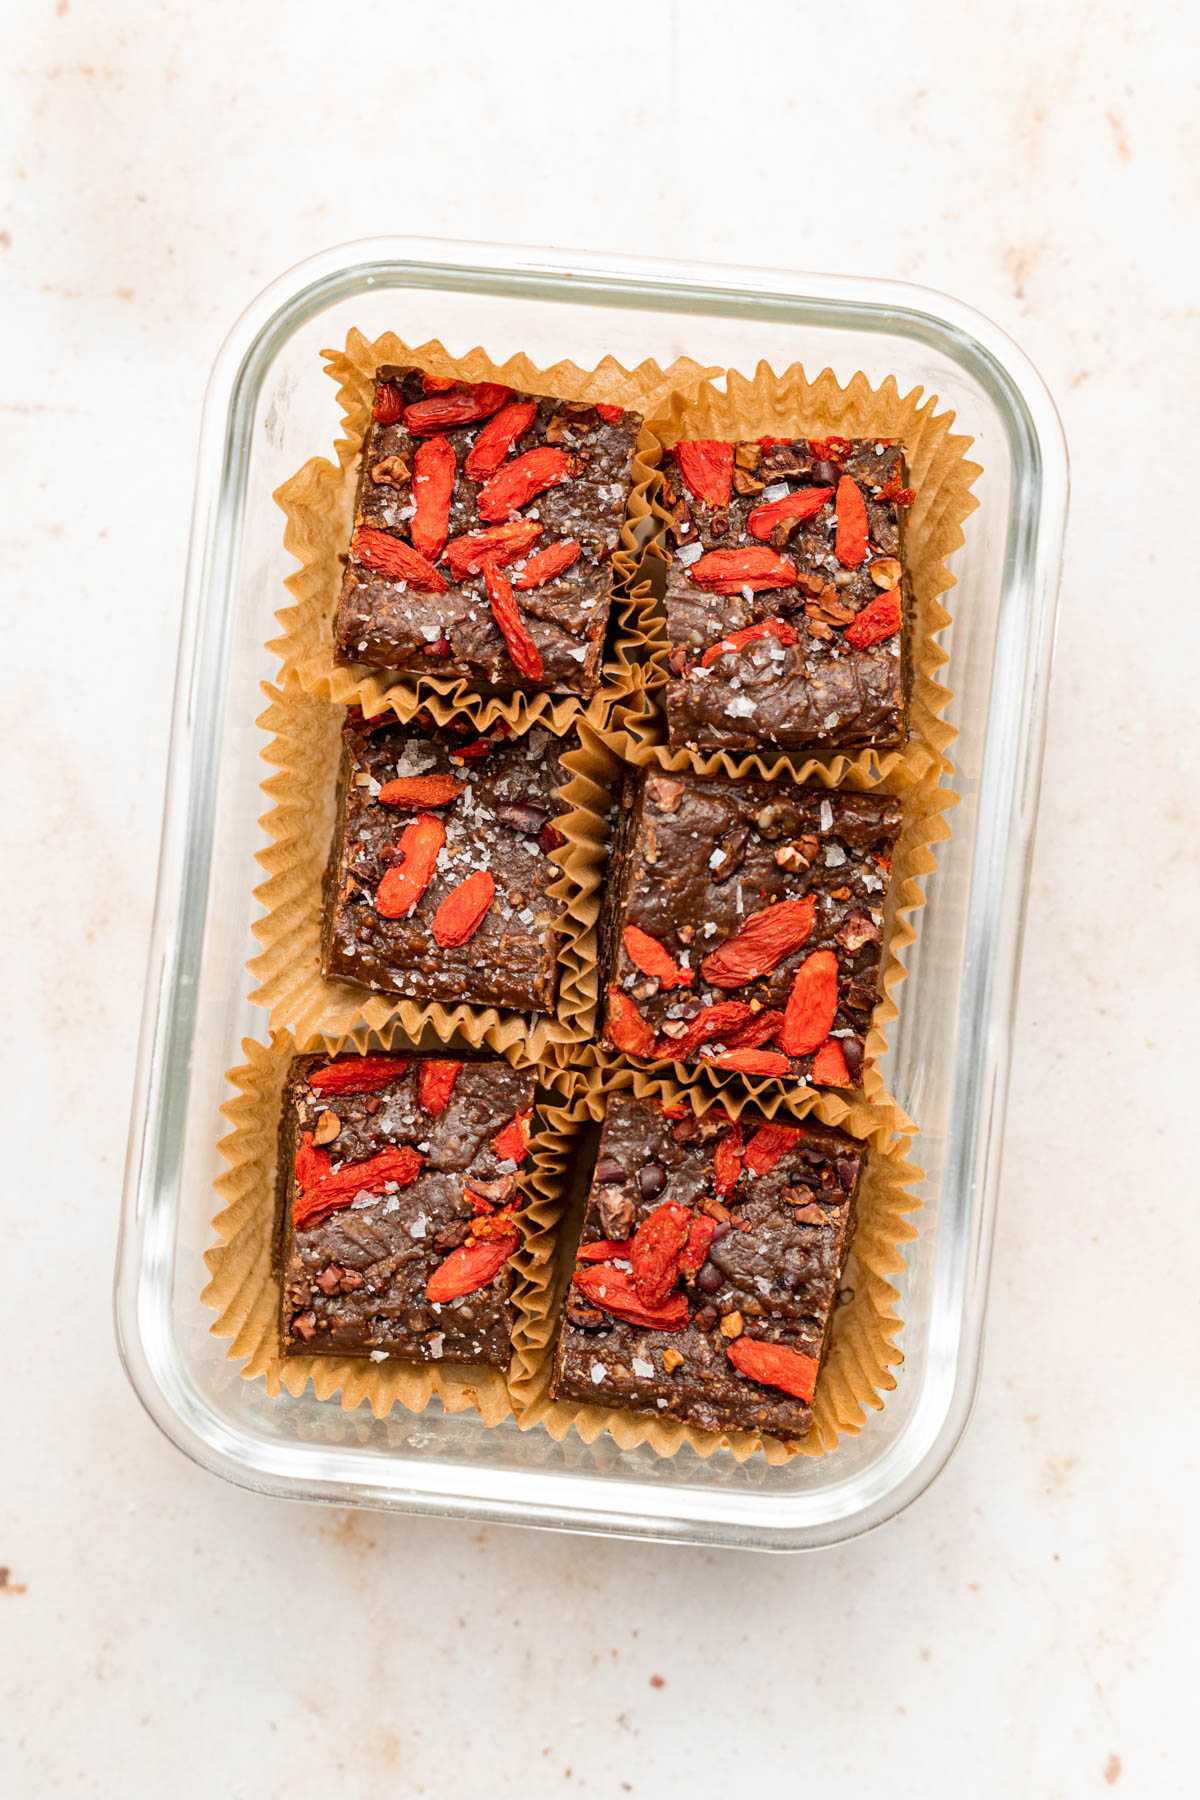 Fudge in small paper liners in a glass container.